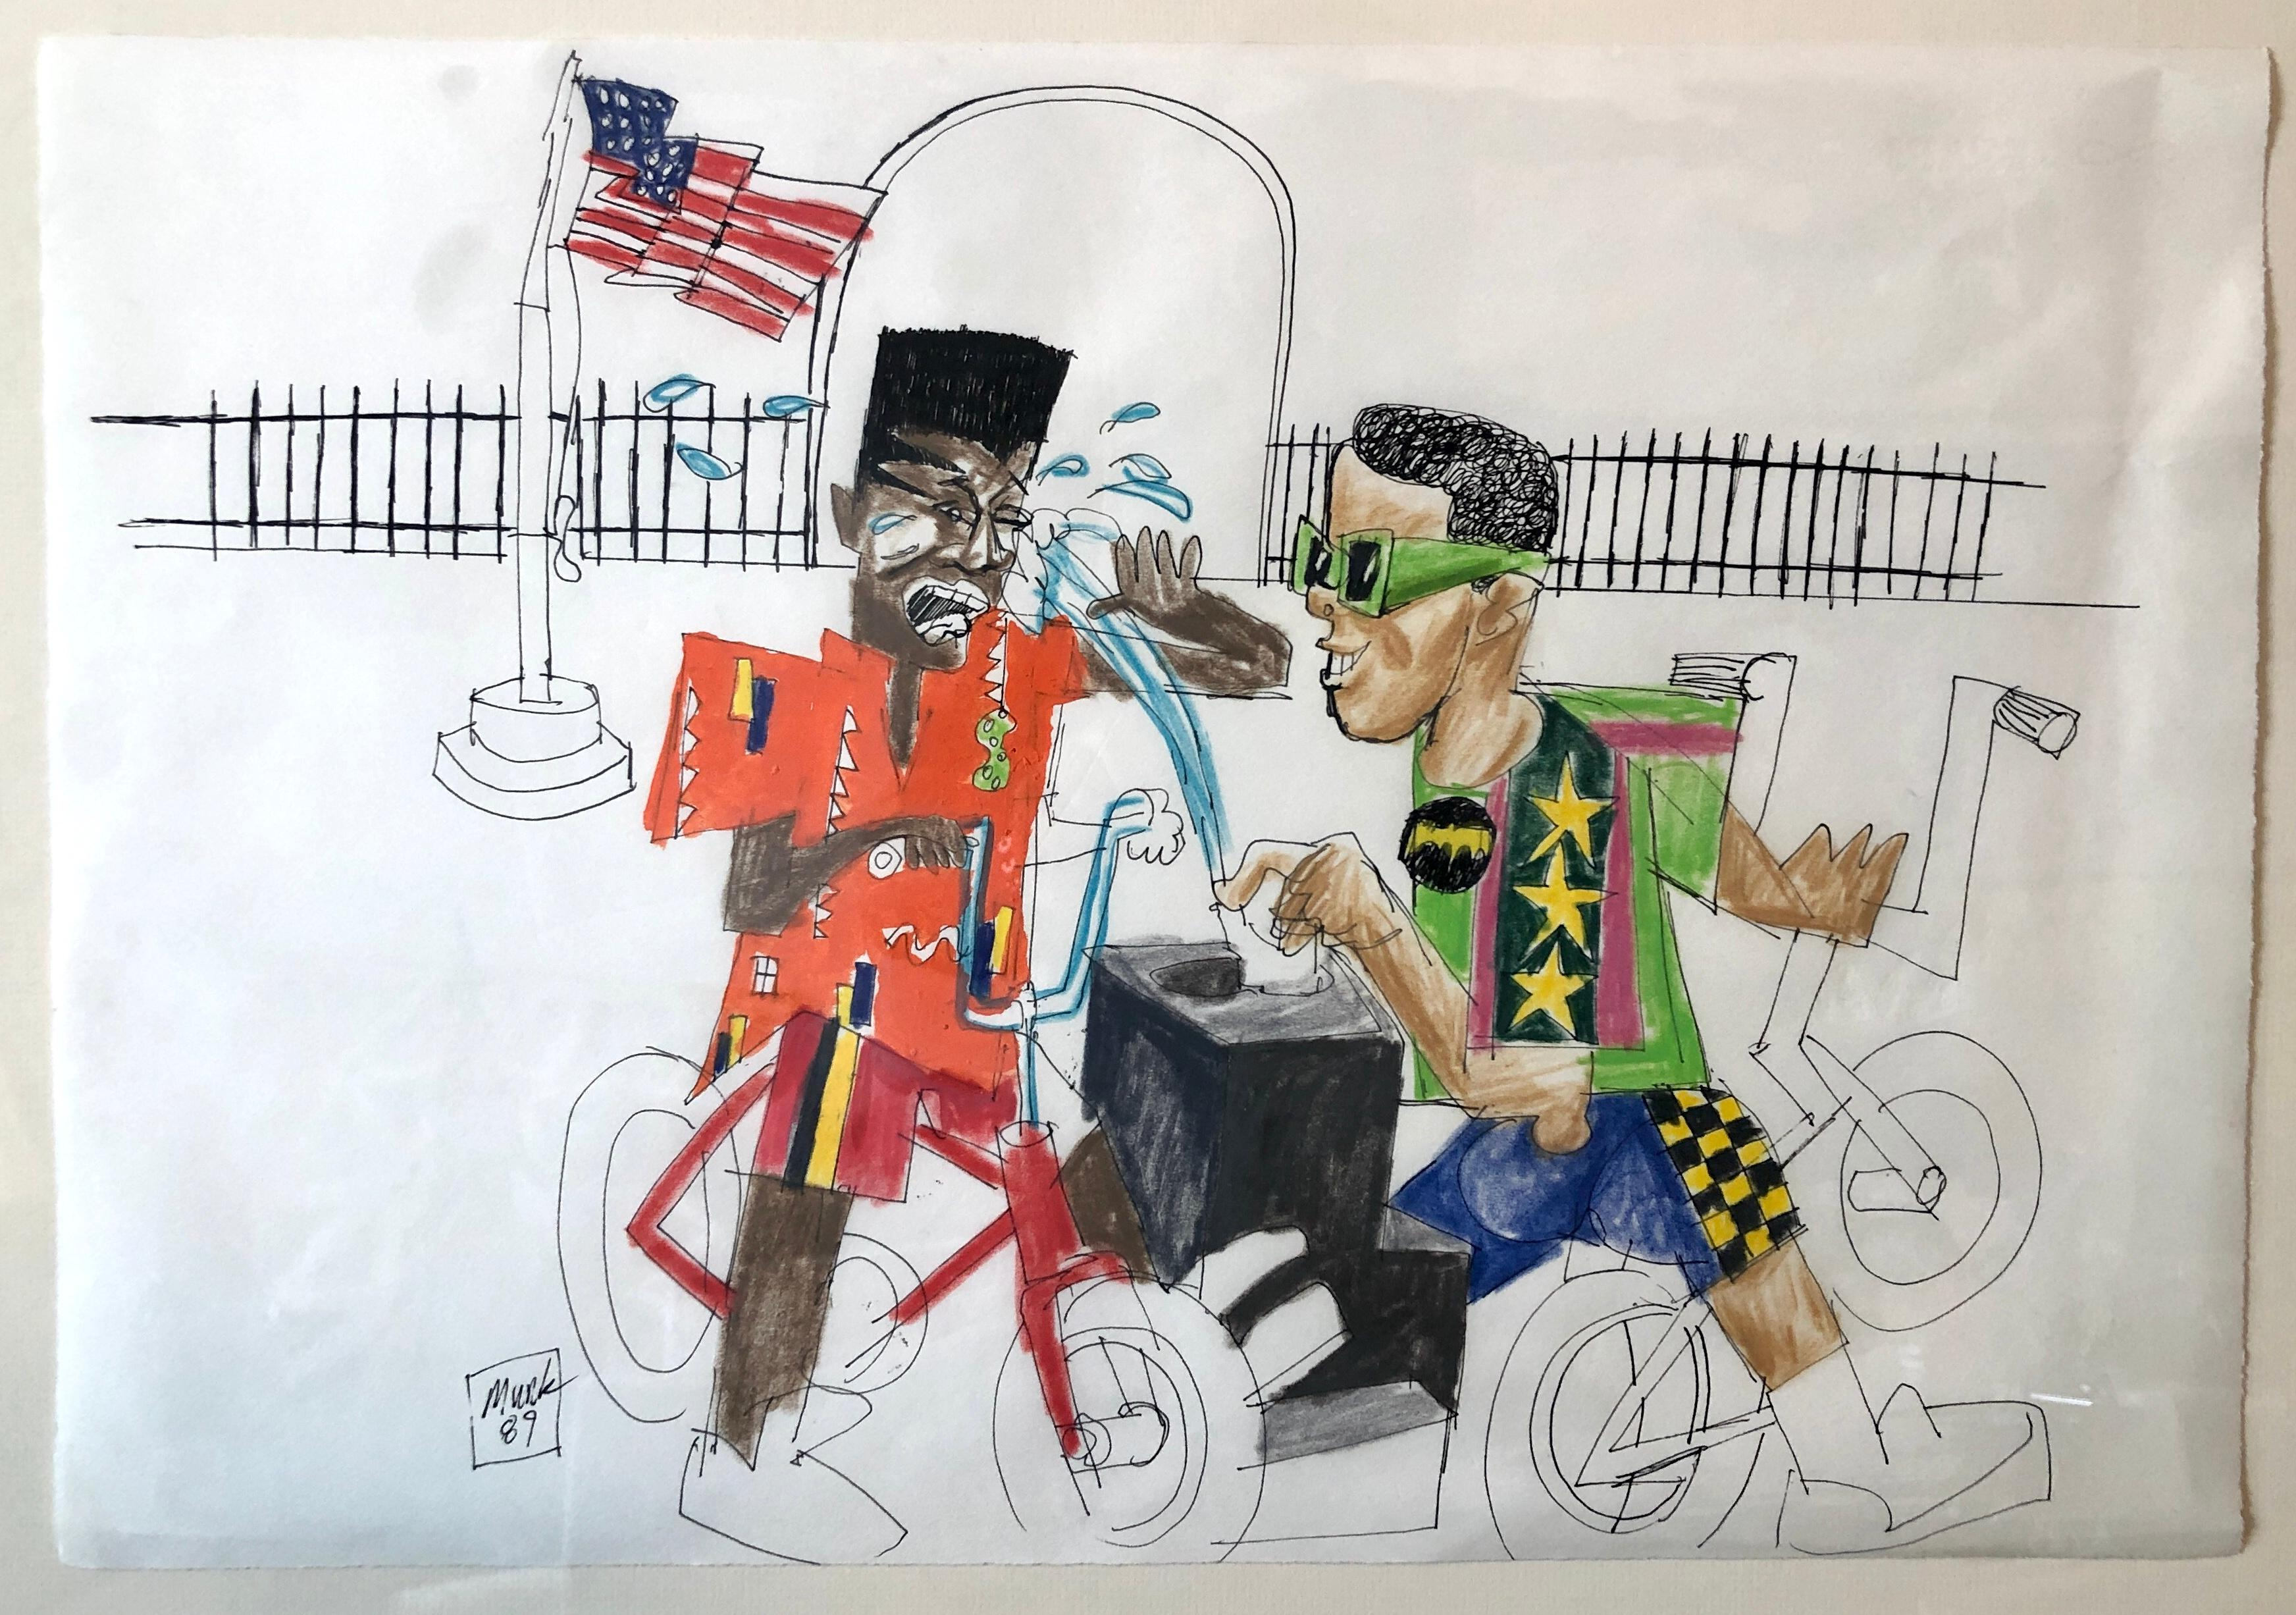 Mixed Media Neo Expressionist Painting Drawing African American Kids in Park